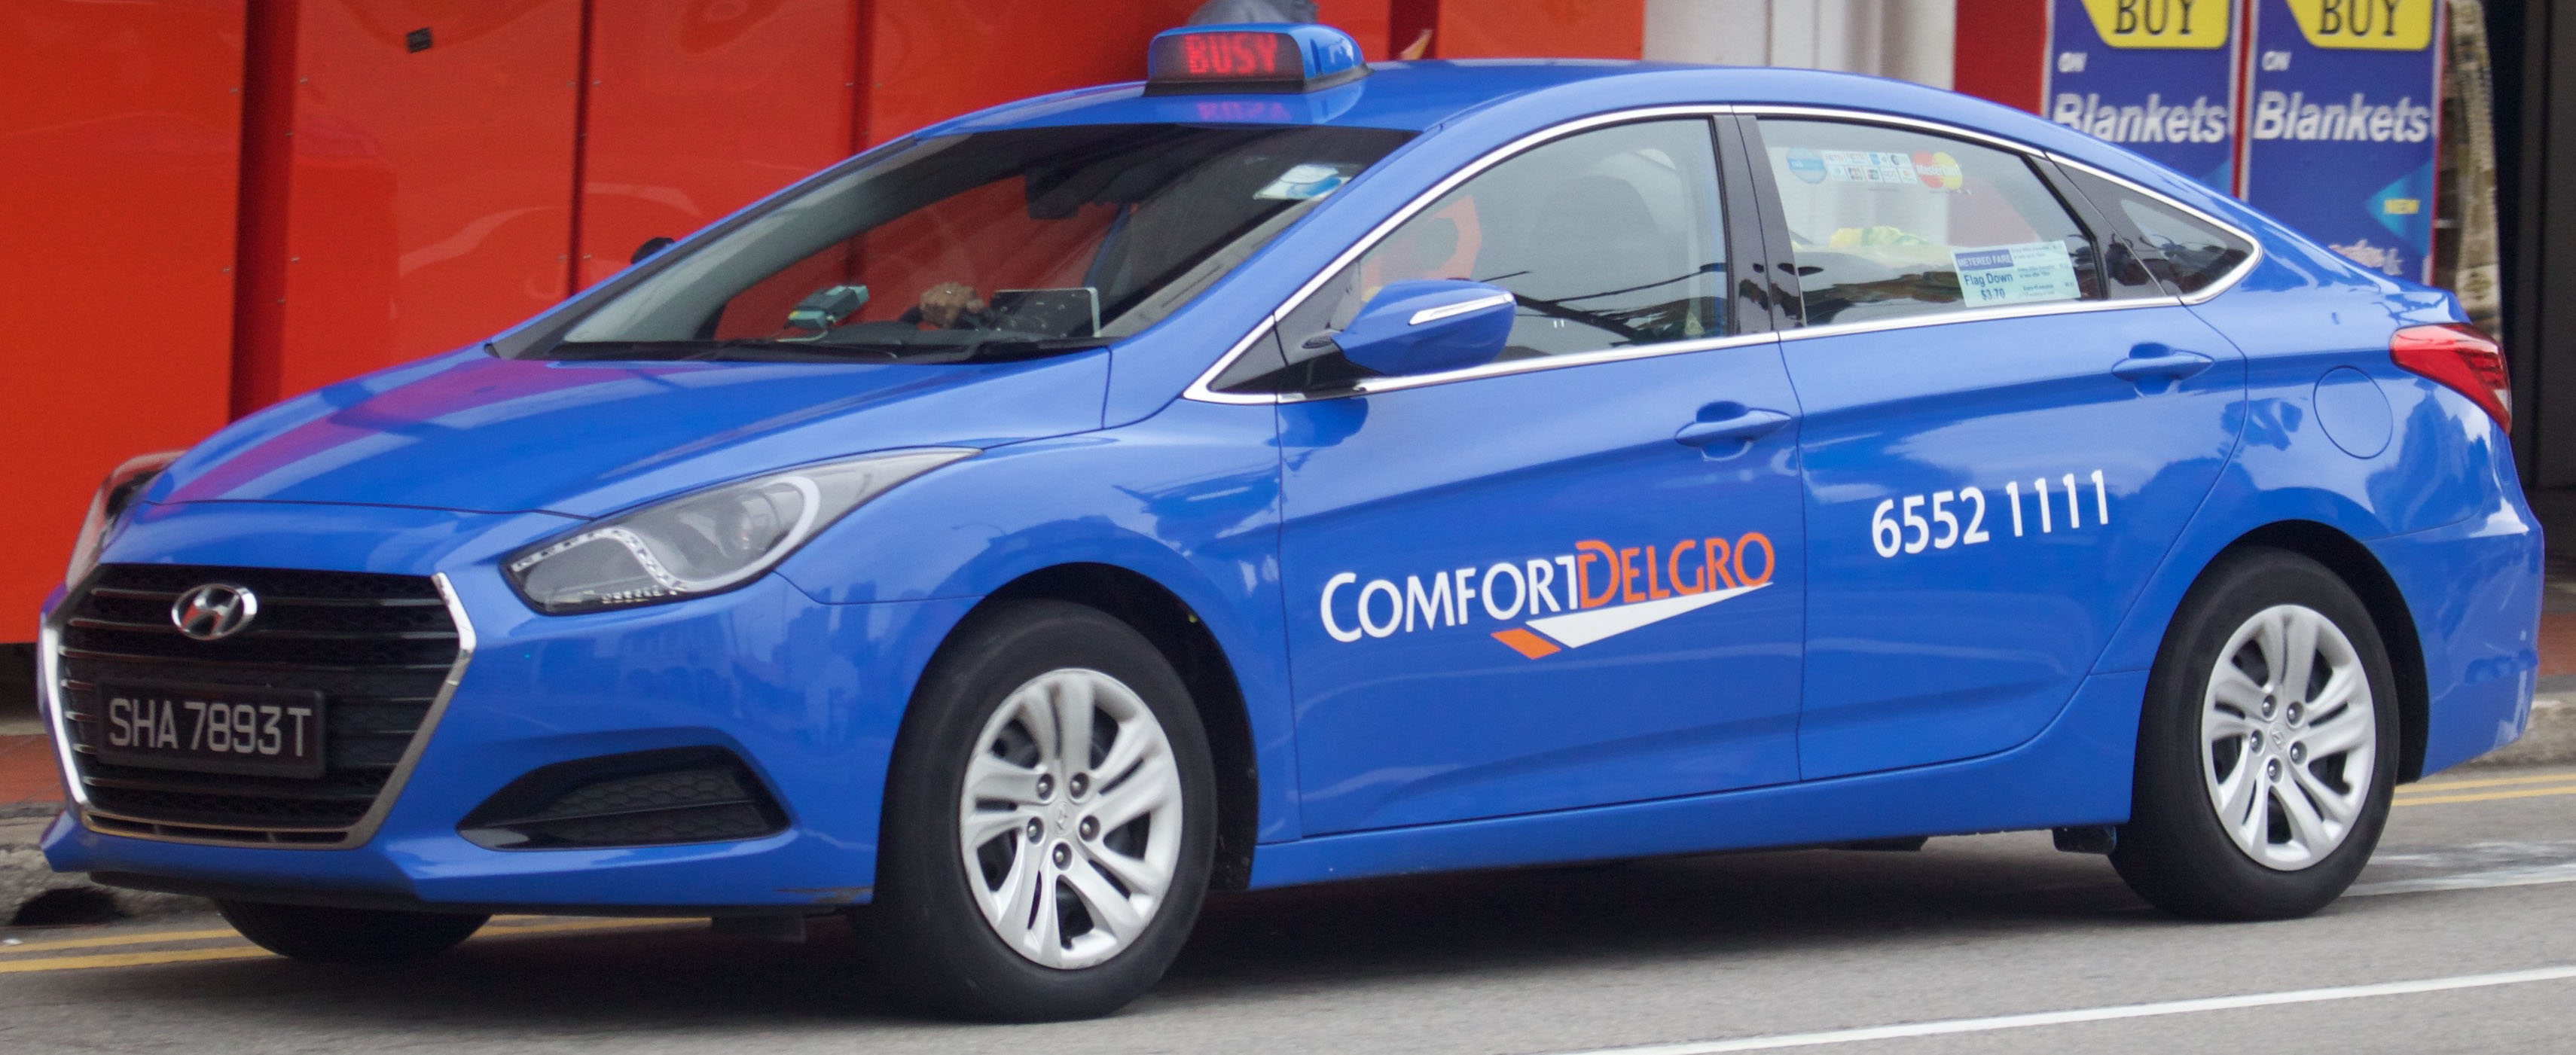 ComfortDelGro will add 200 new hybrid Hyundai Ioniqs to its fleet in June.